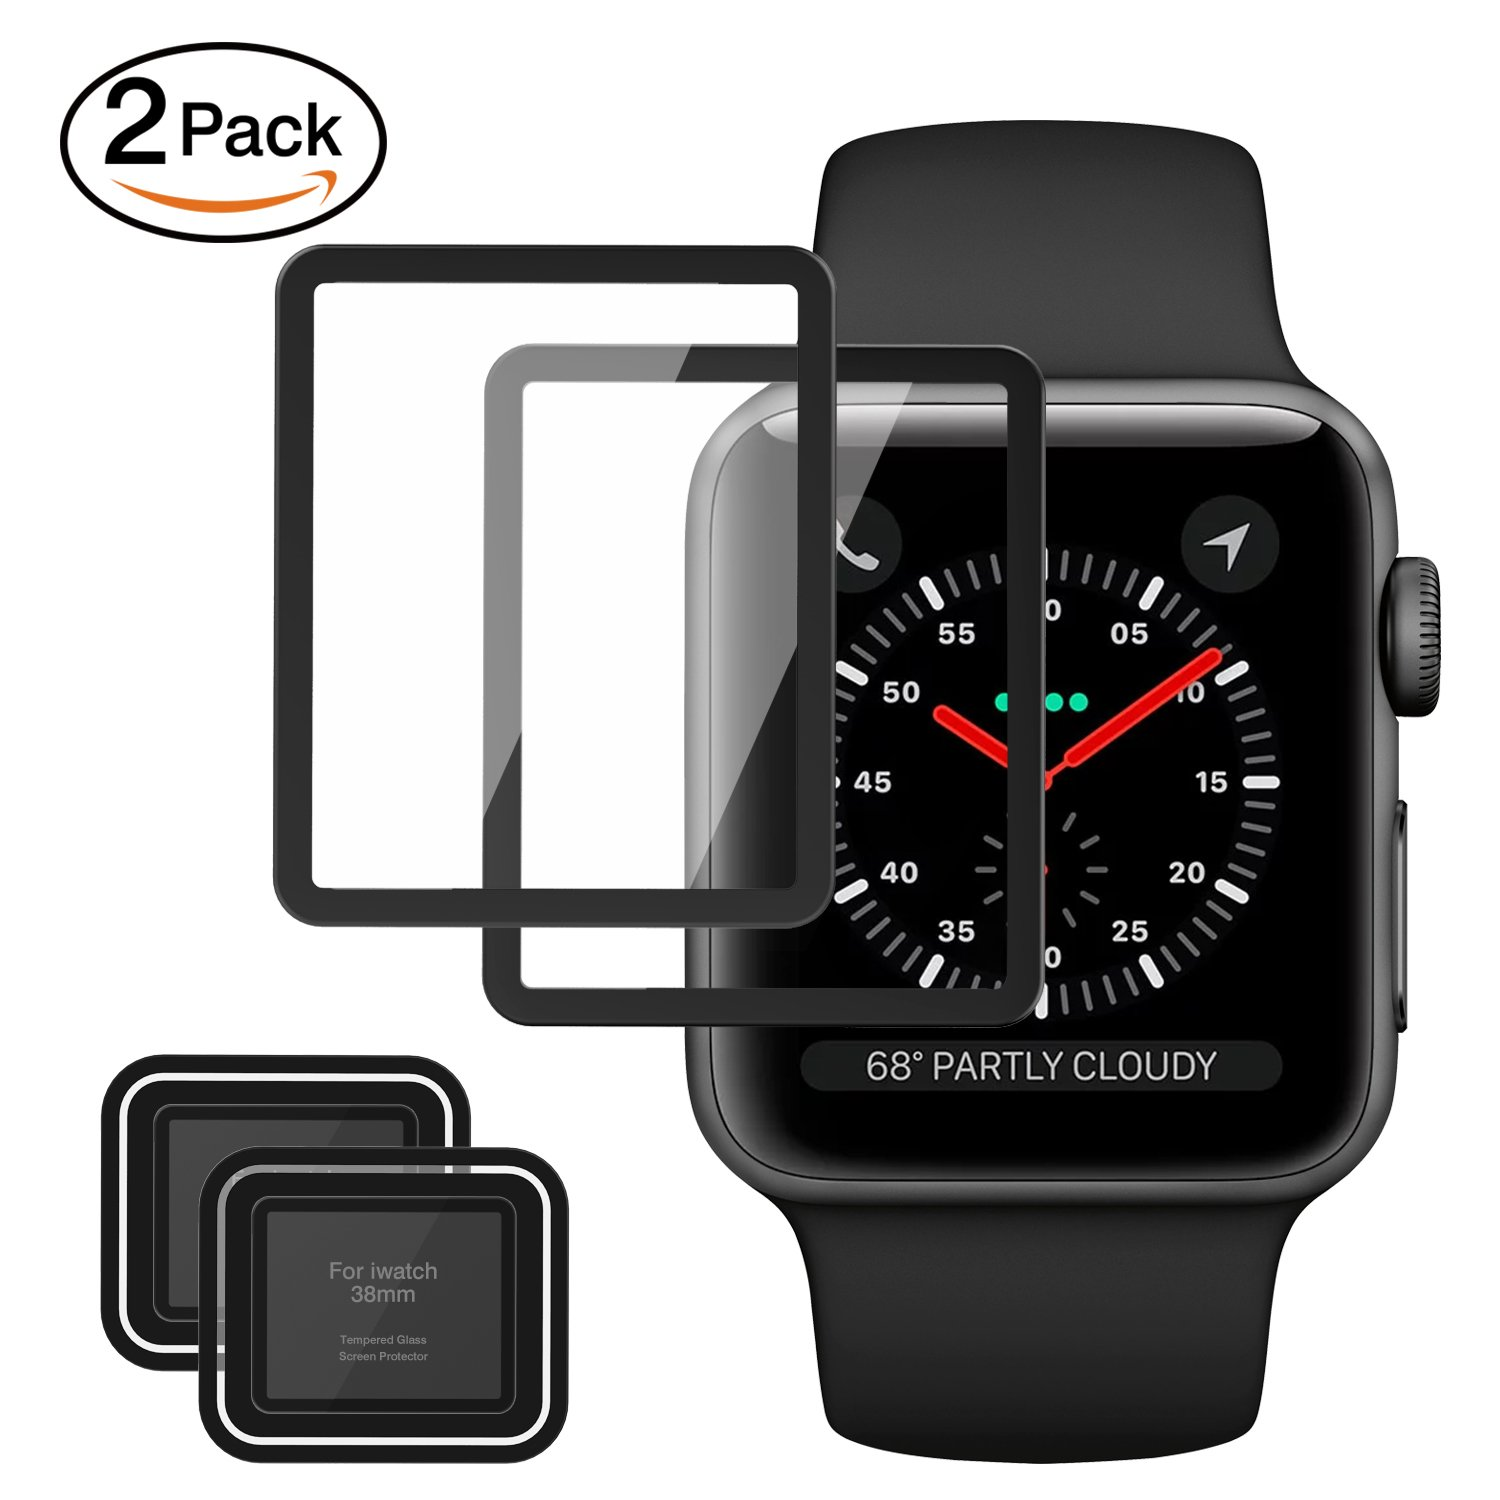 MoKo Tempered Glass Screen Protector for Apple Watch 38mm, [2-PACK] Premium HD Clear Shield Cover Anti-Scratch Film for iWatch 38mm Series 1/2/3 2017, Black (Not Fit Apple Watch 42mm)